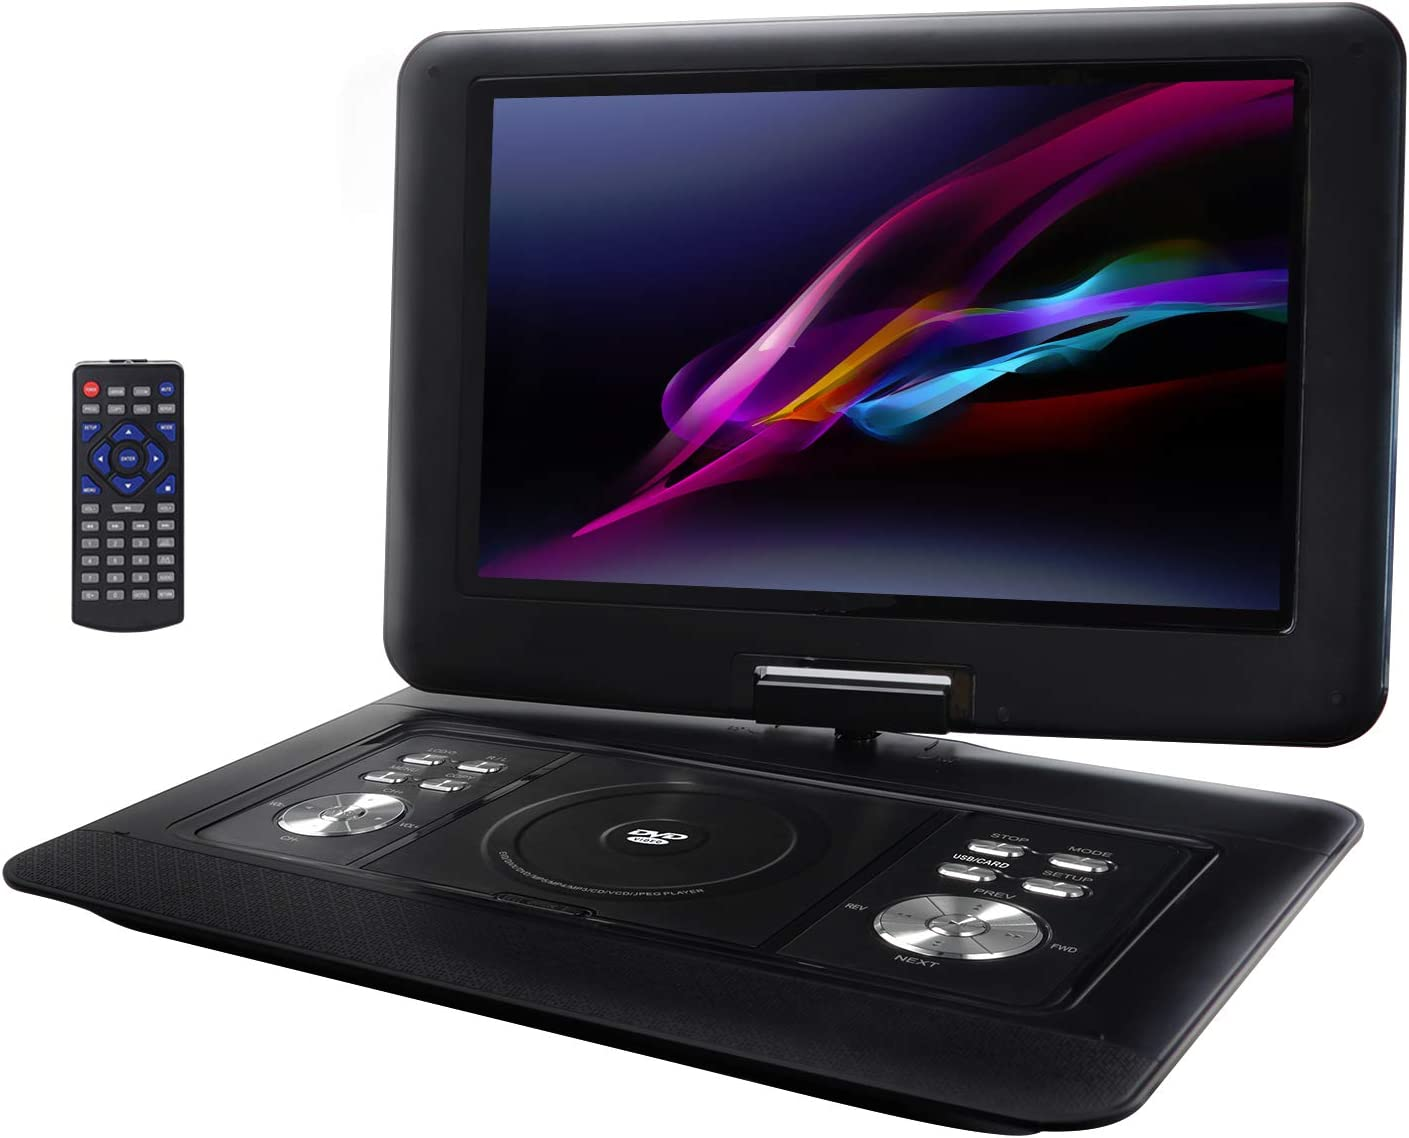 """Trexonic 14.1"""" Portable DVD Player with Tft-LCD Screen and USB/SD/AV Inputs"""